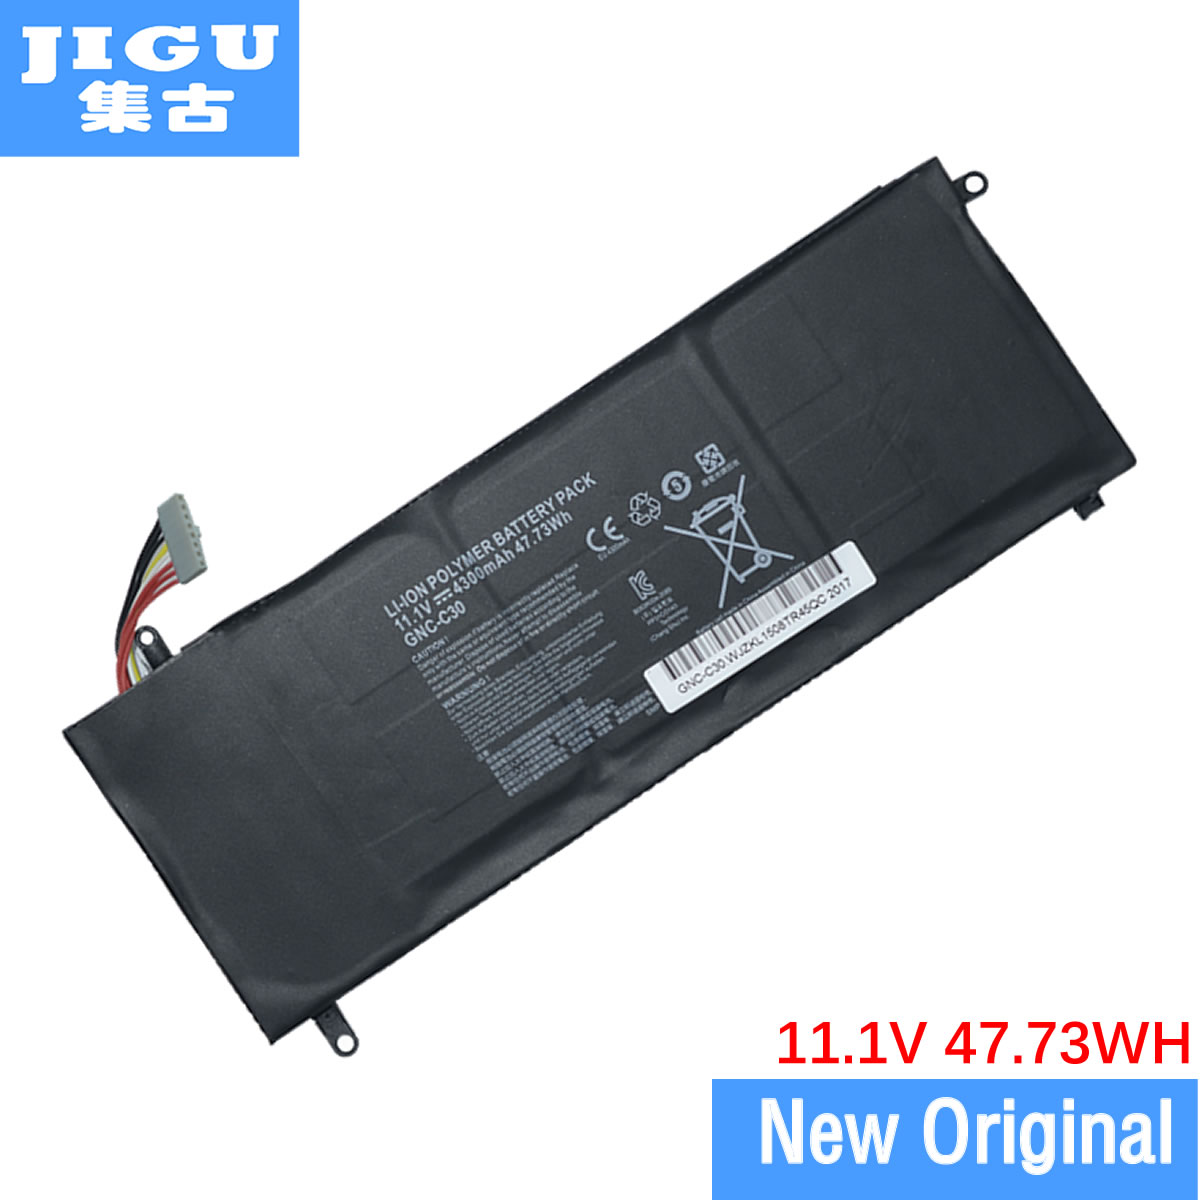 JIGU New 11.1V 4300mAh 47.73Wh Laptop Battery GNC-C30 961TA002F For GIGABYTE U2442 U24F P34G V2 High Quality